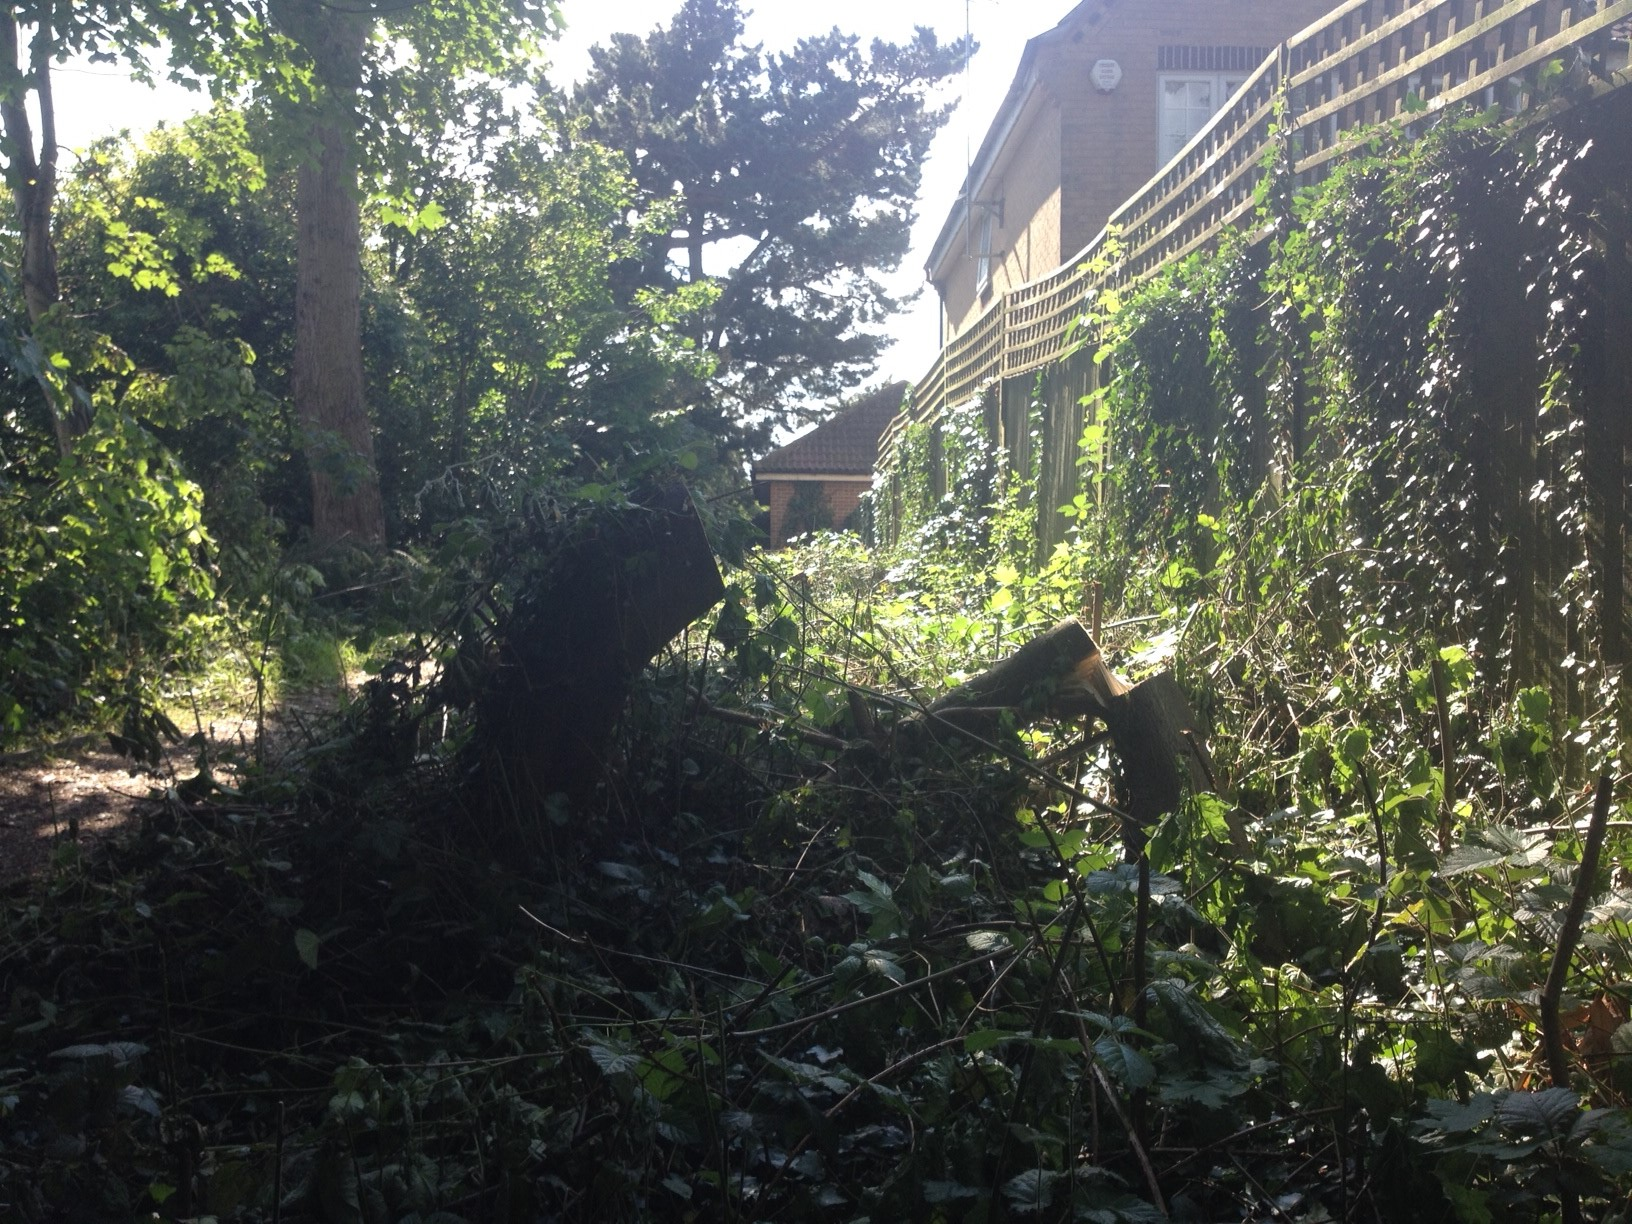 Police hunting three men after trees cut down in act of 'wanton vandalism'